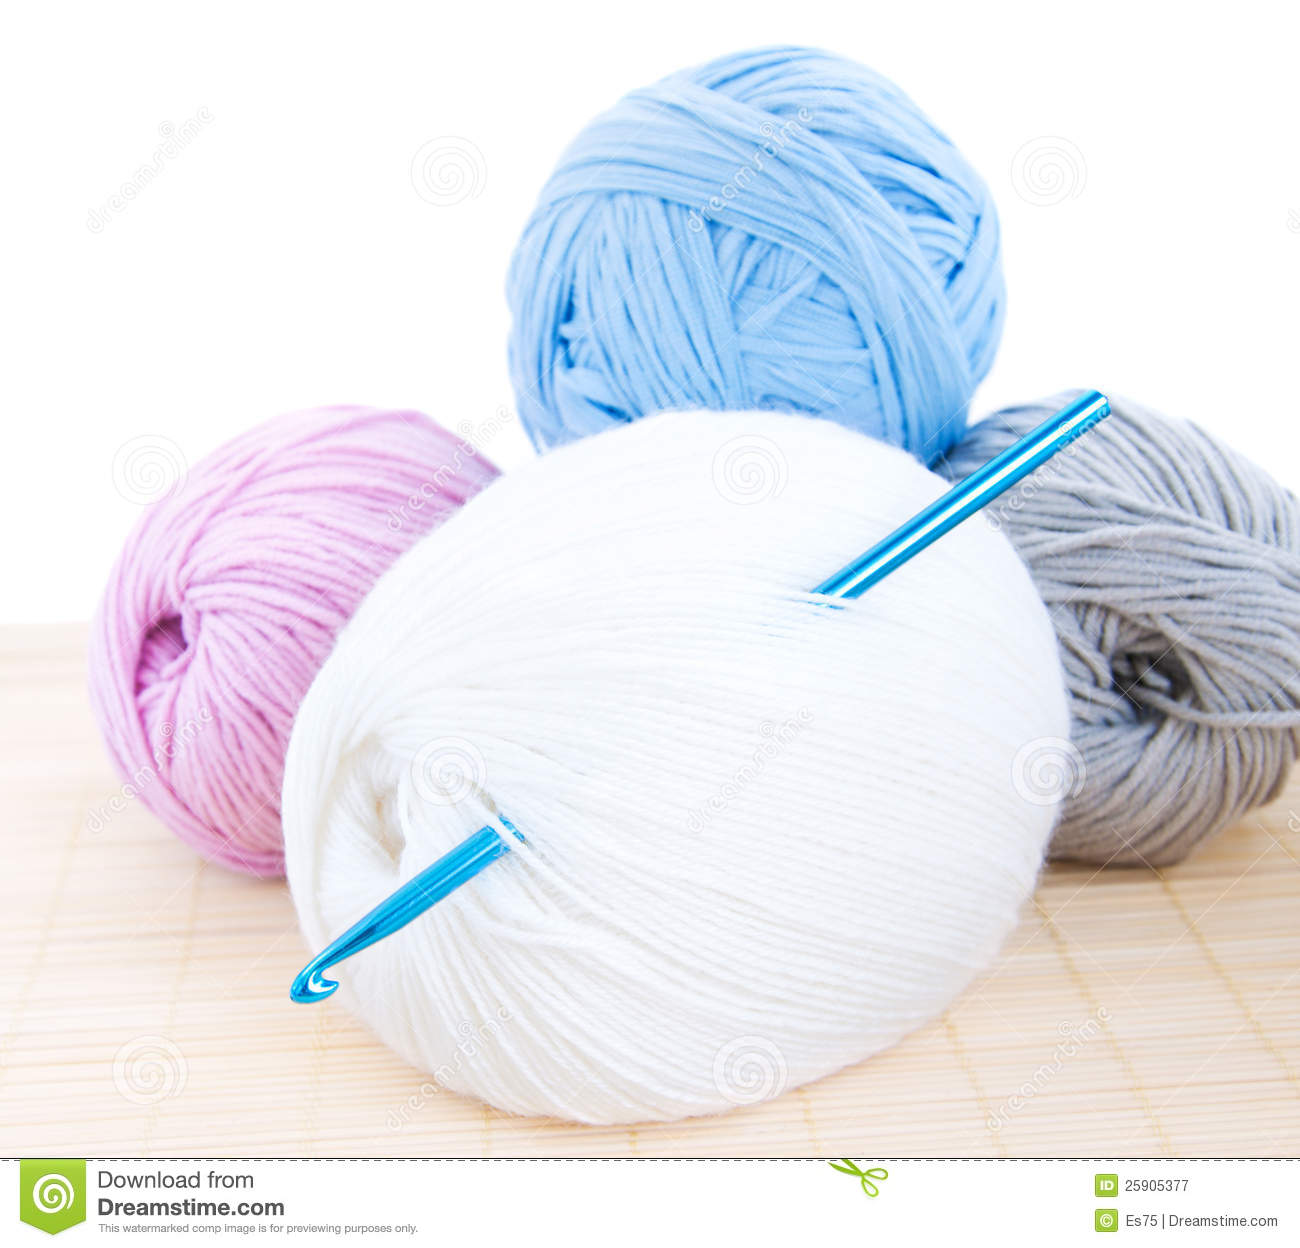 Crocheting Needles And Yarn : Crochet Hook And Yarn Clip Art crochet hook-and yarn clipart - clipart ...